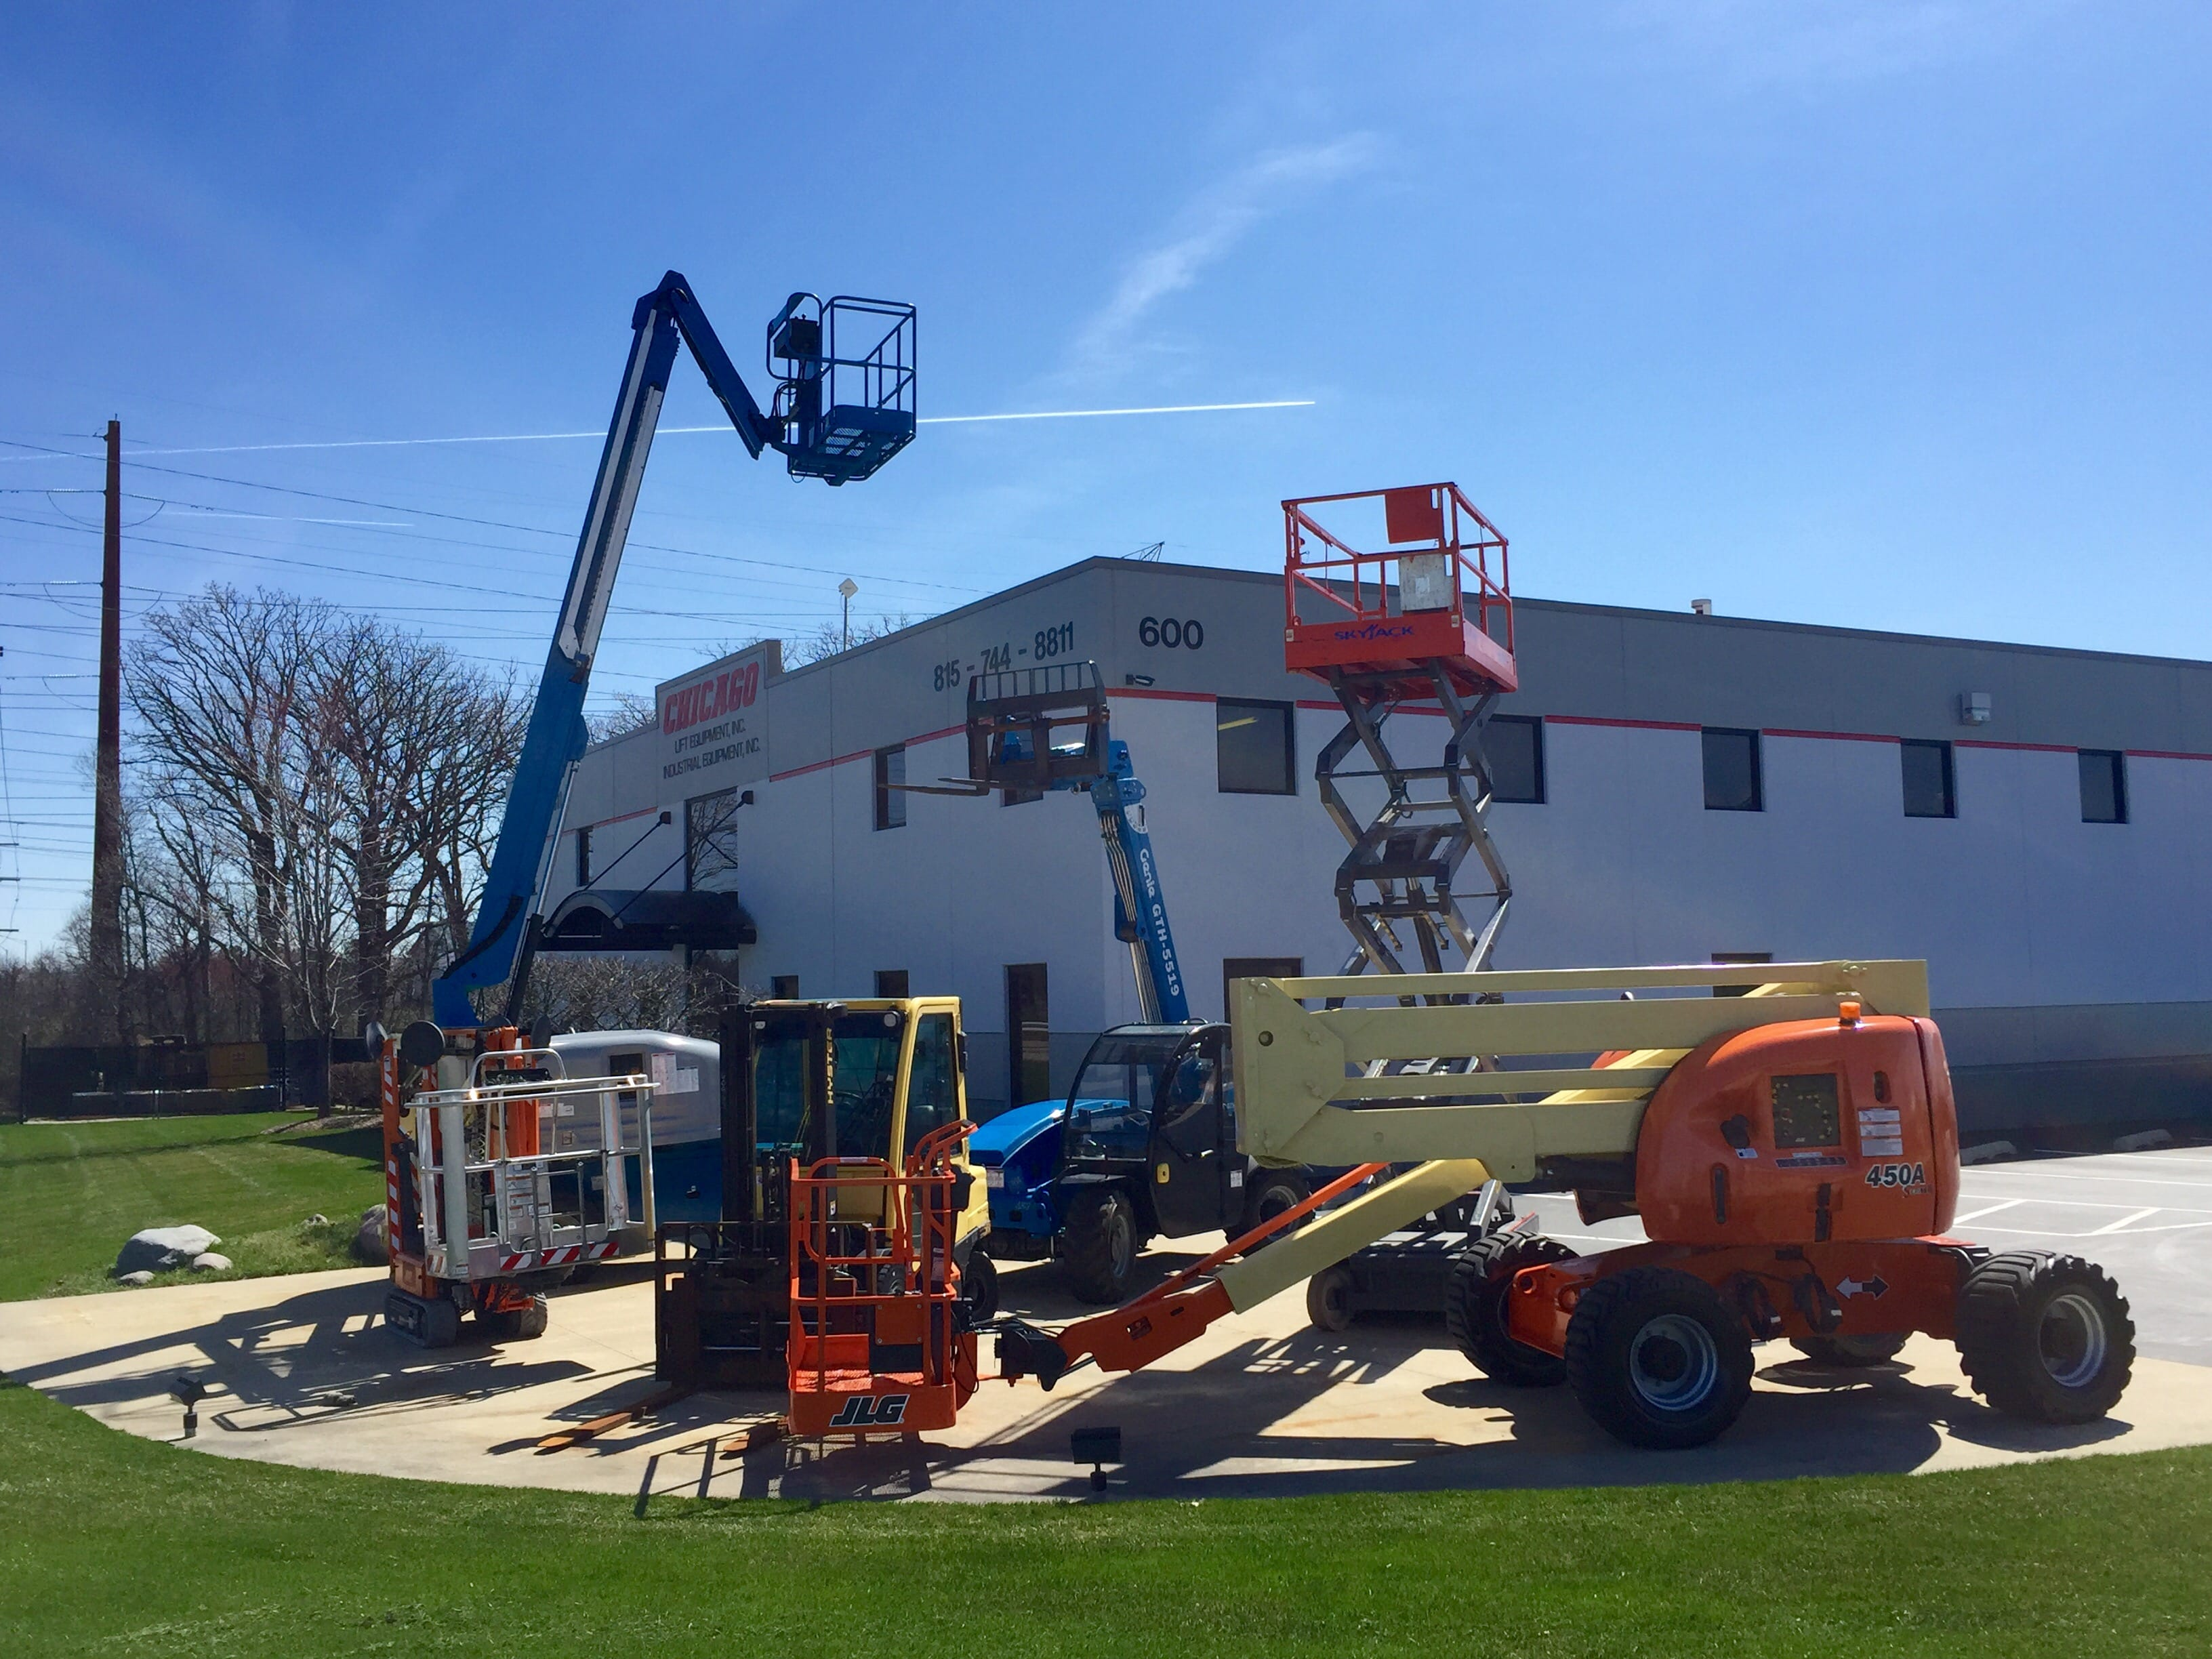 New & Used Aerial Lifts & Work Platforms For sale | Chicago